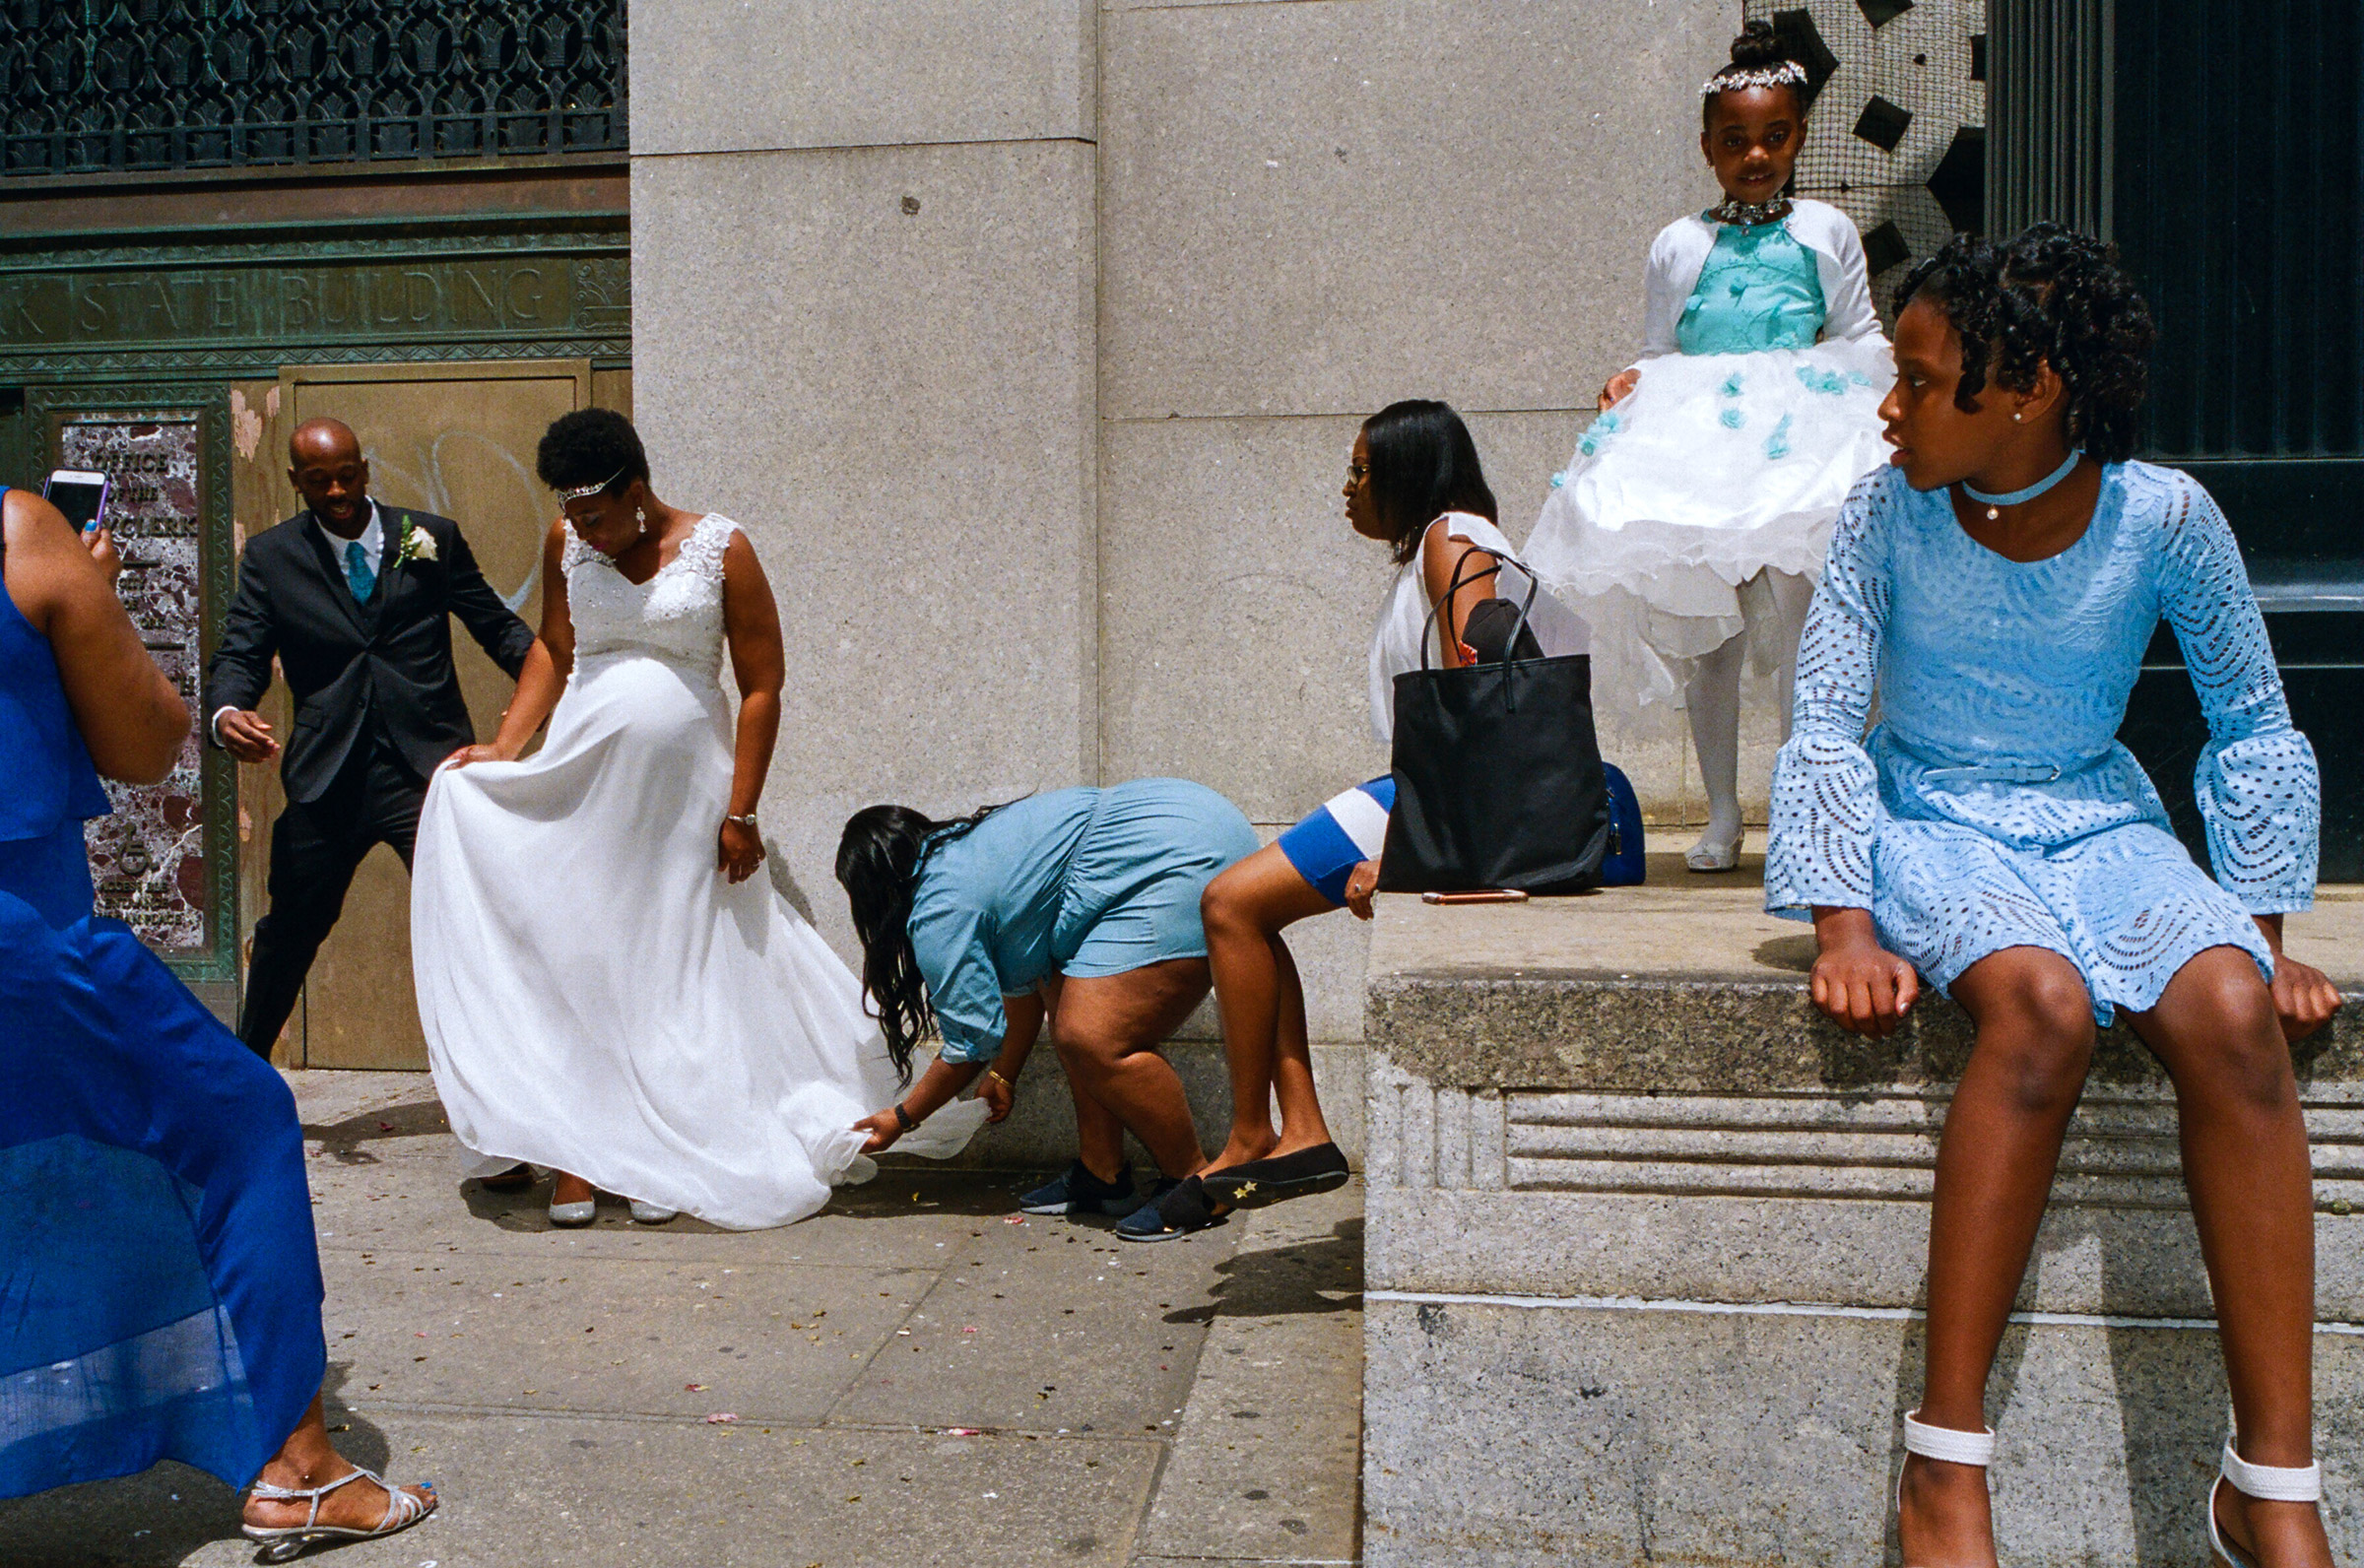 A wedding party outside the City Clerk's office on Worth Street, May 13, 2017.